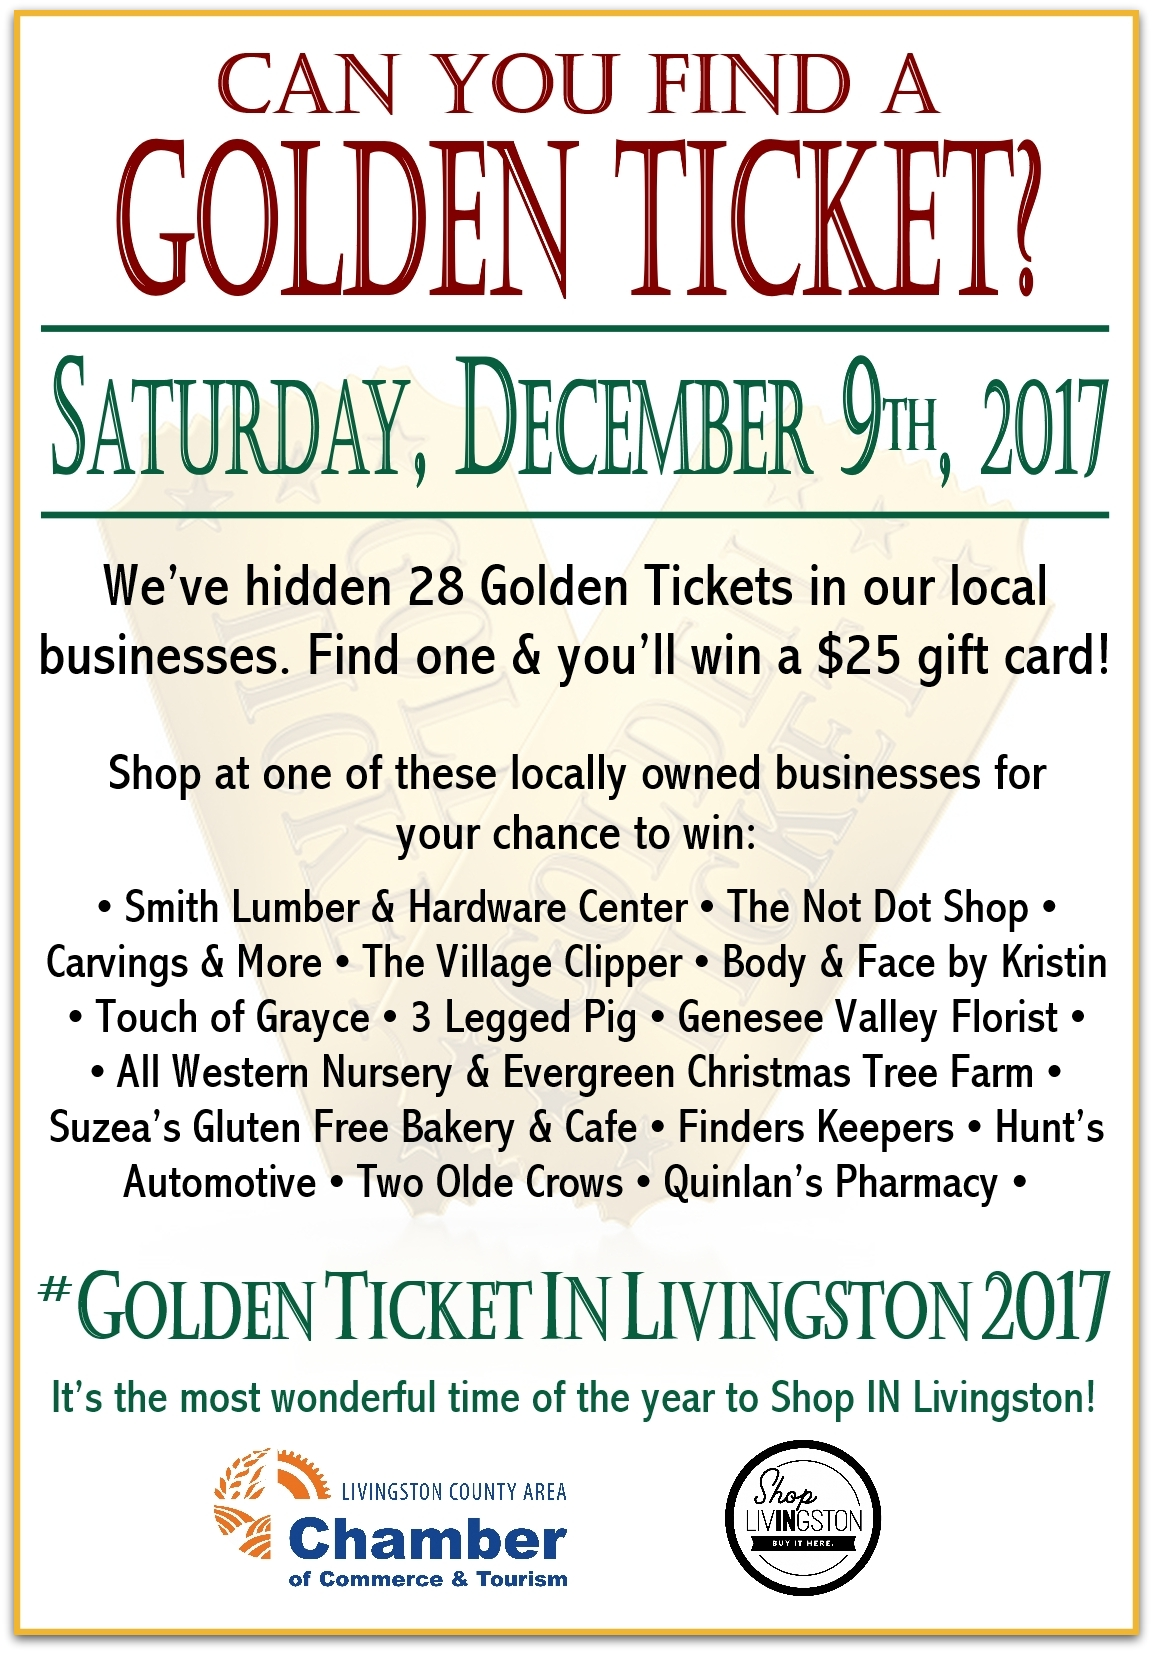 Golden Ticket, Livingston County Chamber, Shop Local, Shop In Livingston